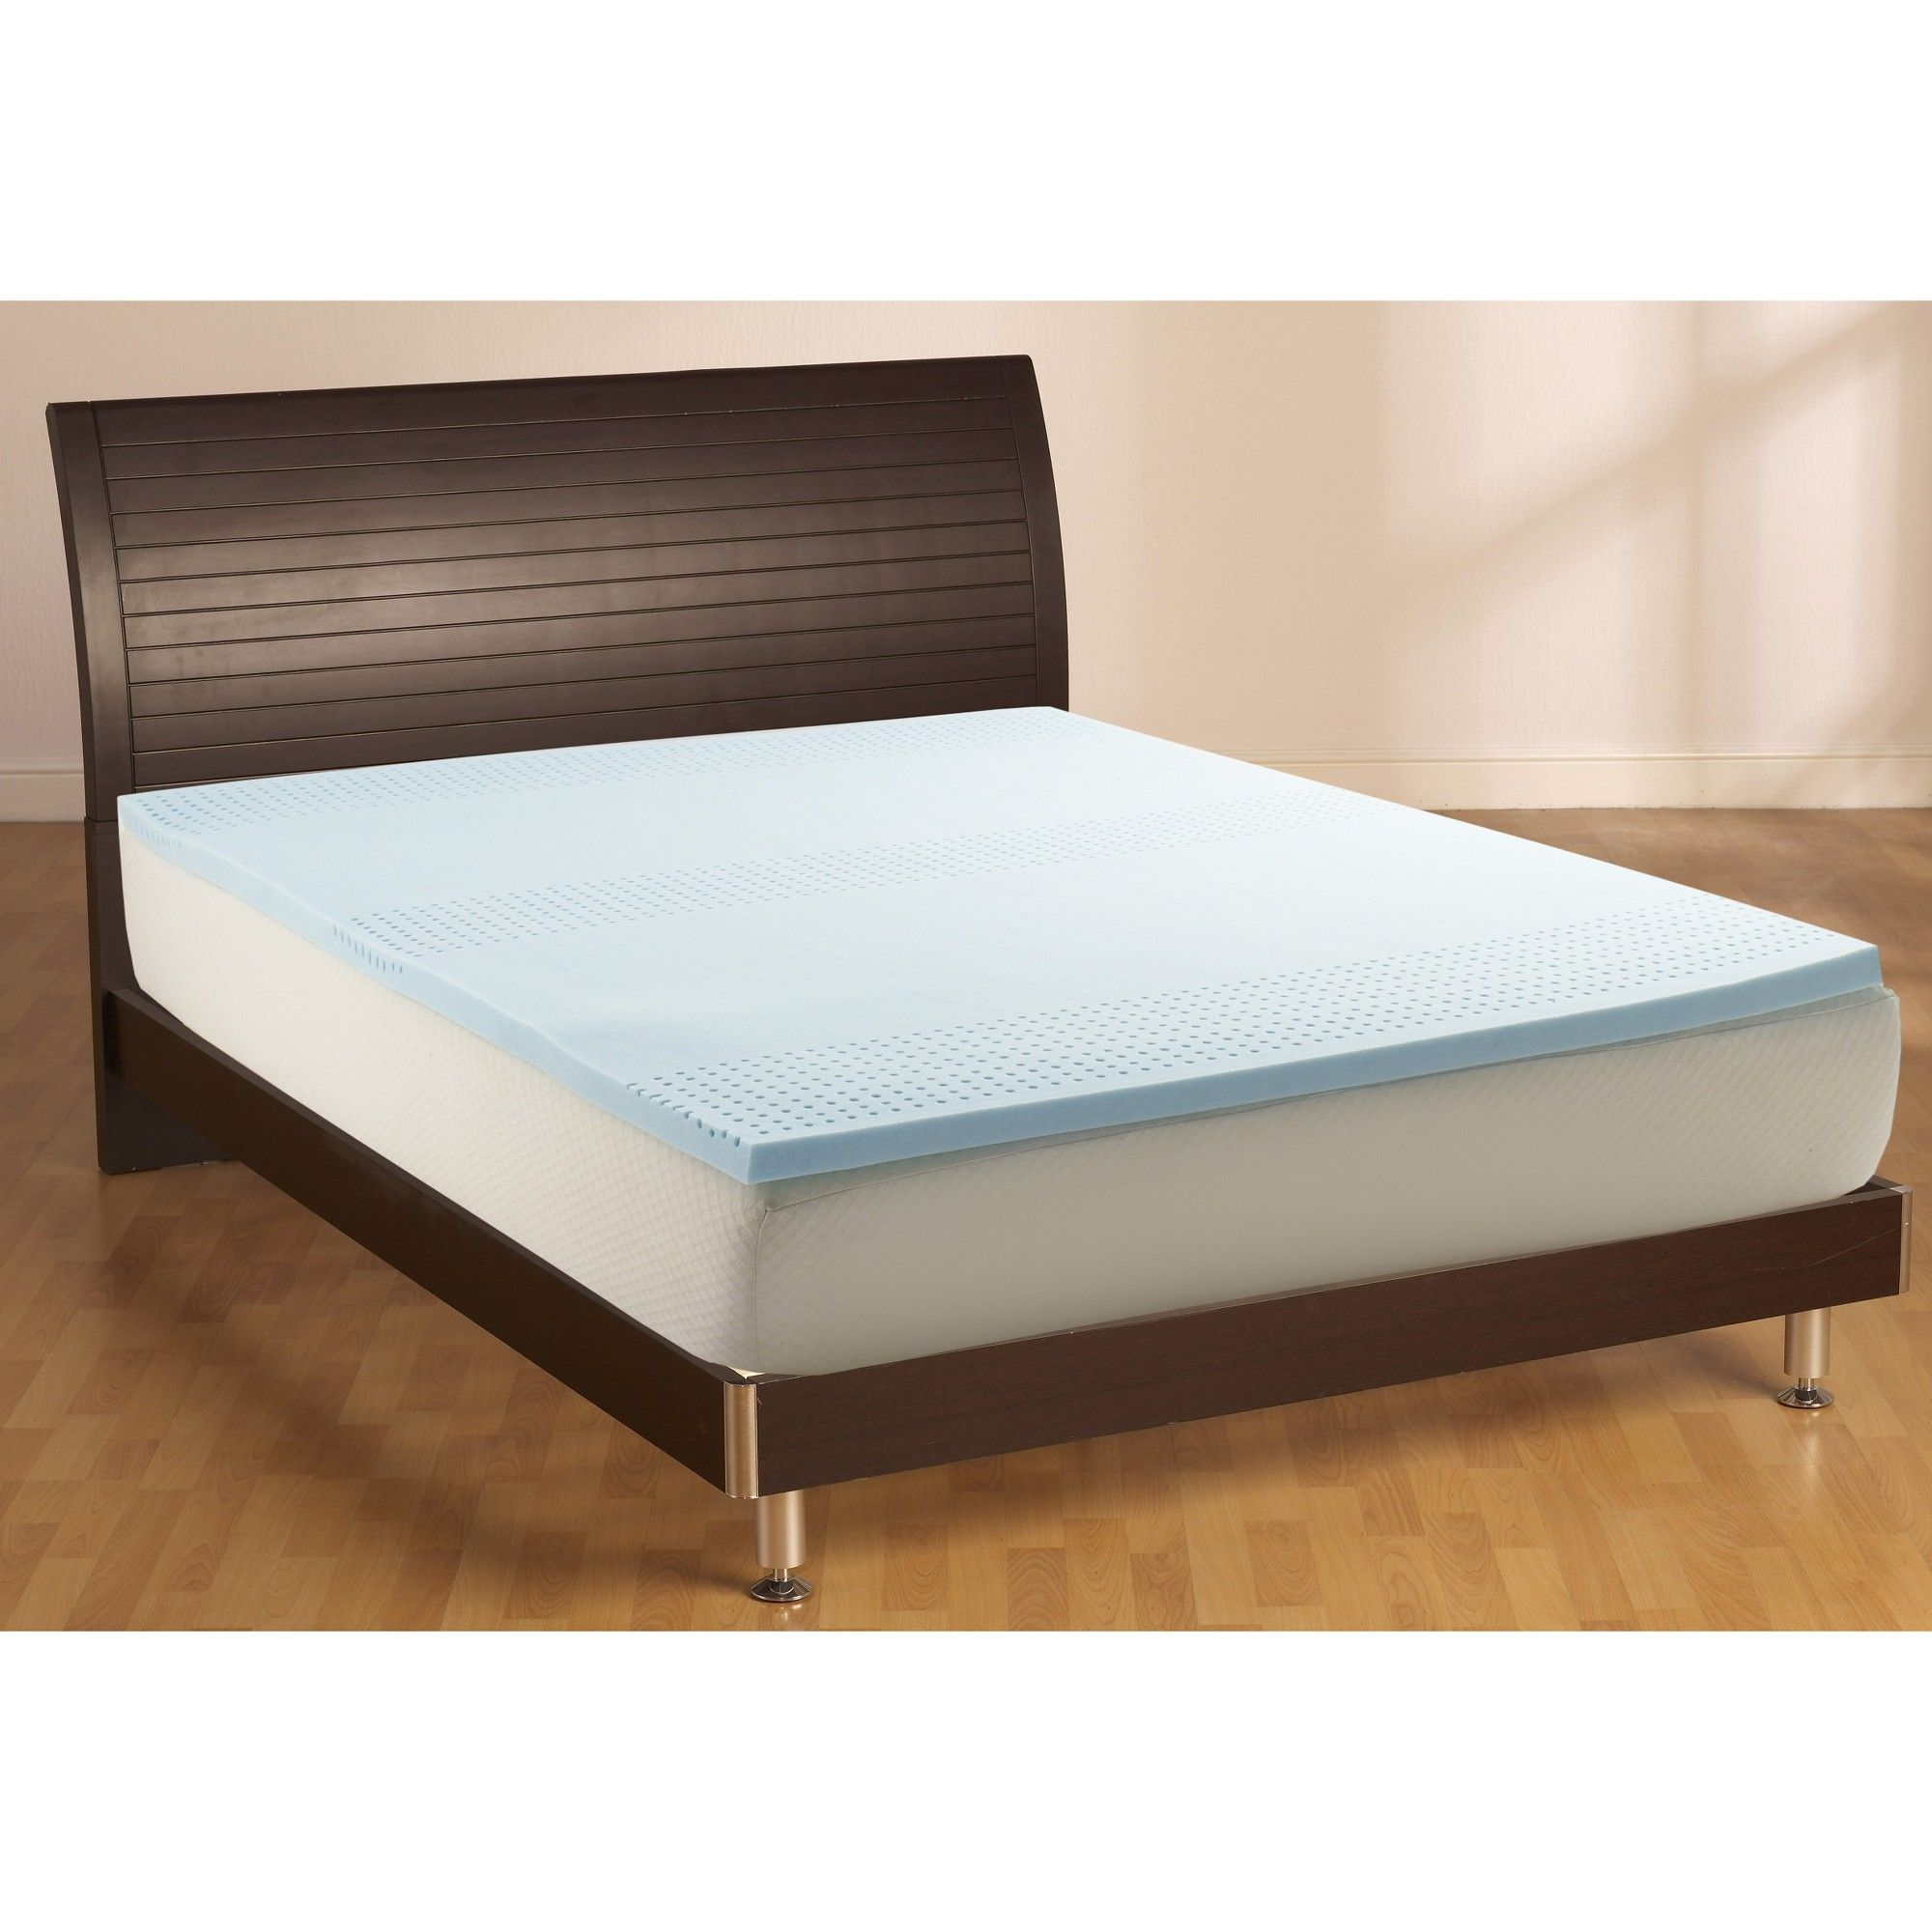 Full 2 Cooling Gel Mattress Topper White Made By Design